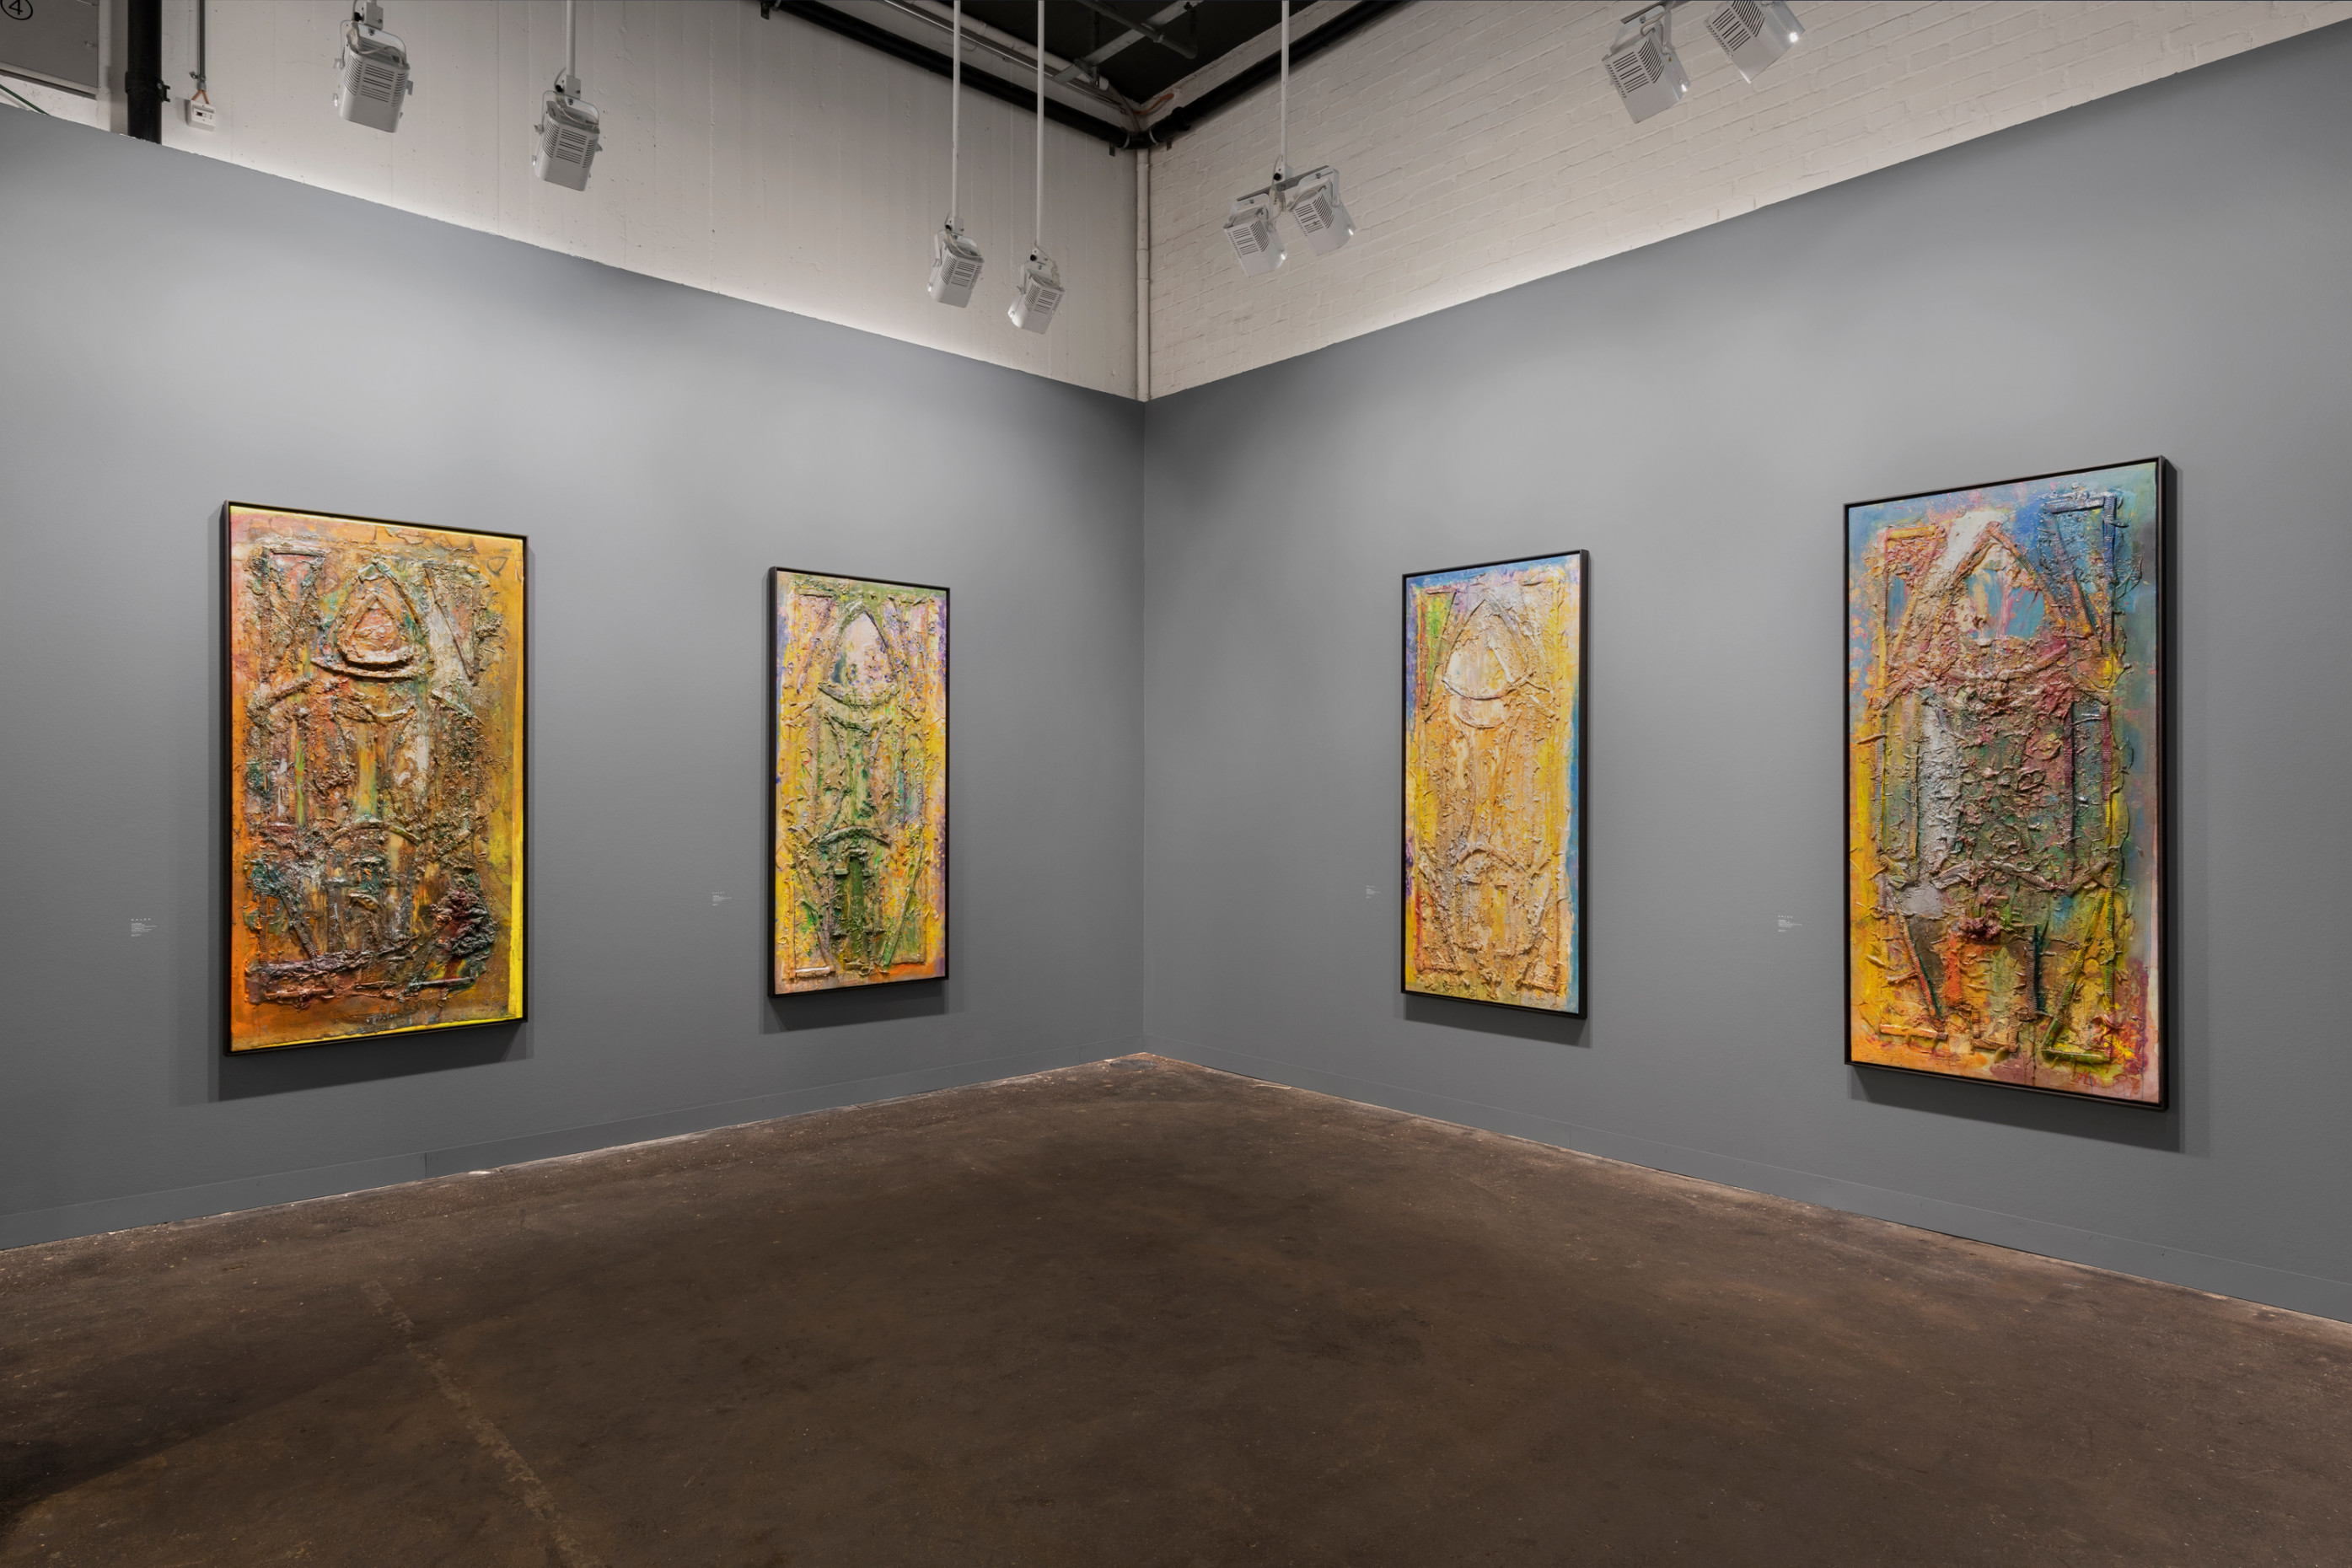 Installation view, Hales Gallery at Art Basel, Switzerland | Booth J12, 'Frank Bowling: The Cathedral Paintings', 12 - 16 June 2019